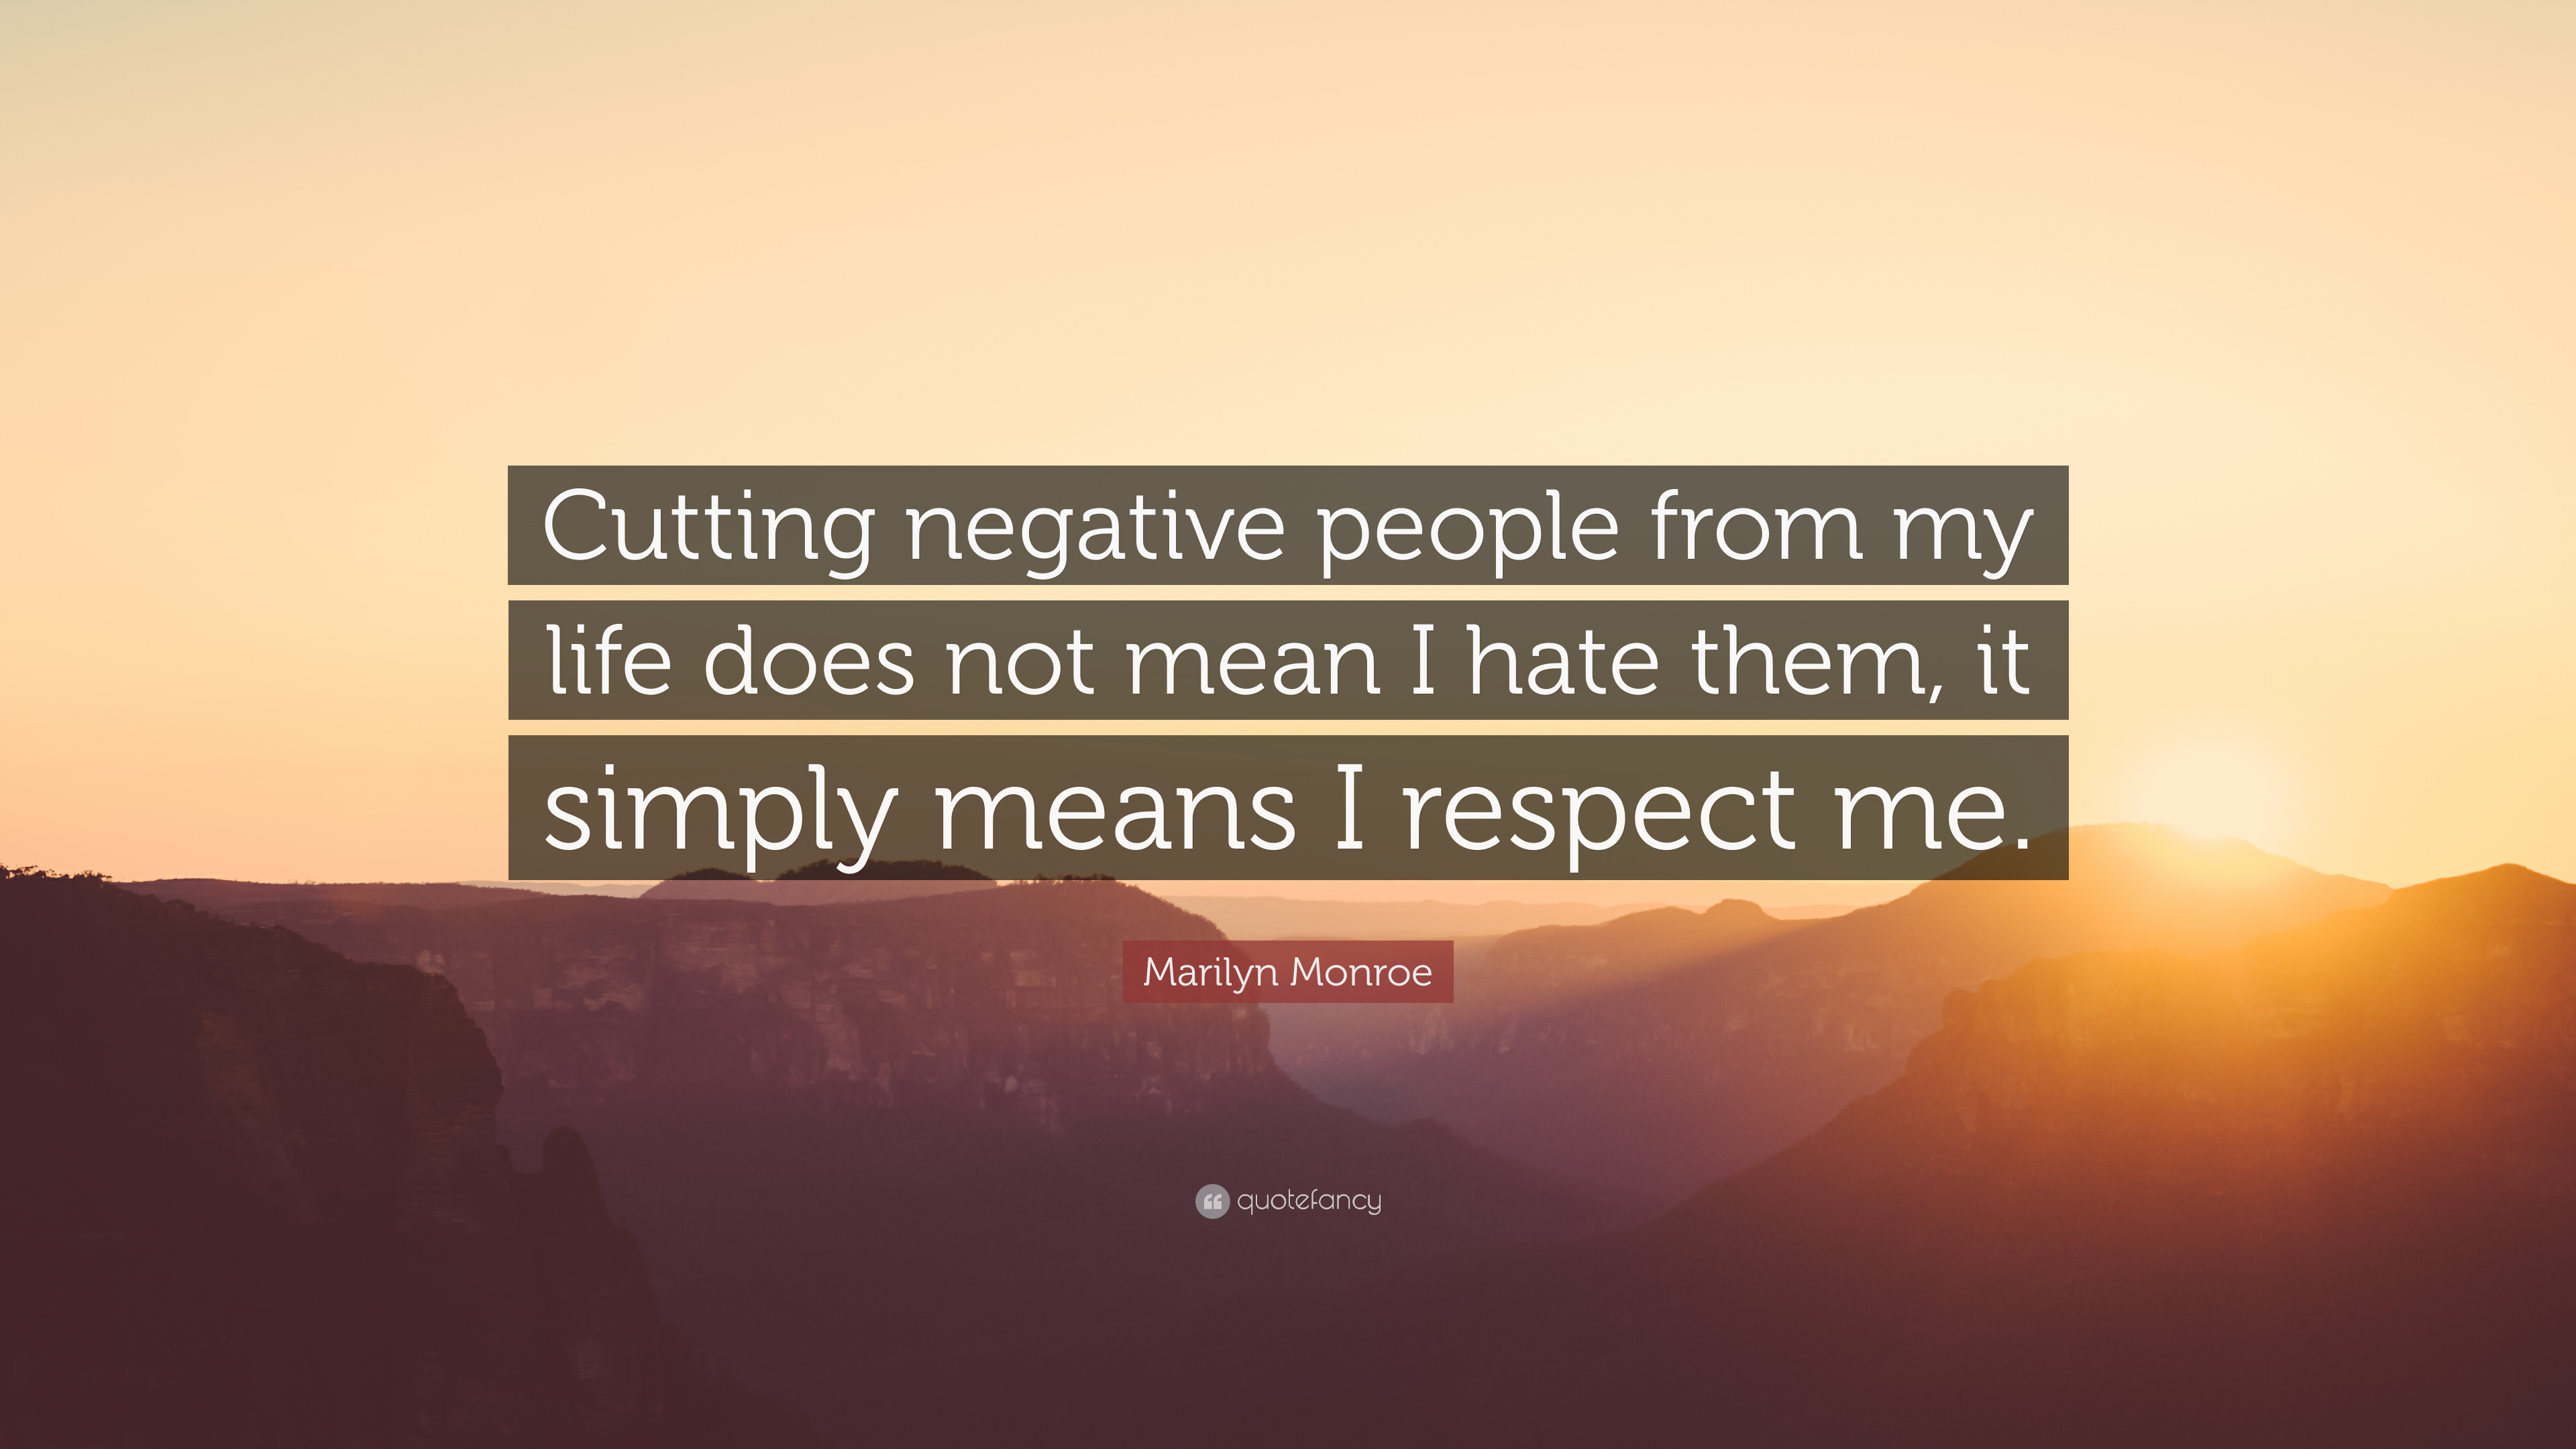 Marilyn Monroe Quote: U201cCutting Negative People From My Life Does Not Mean I  Hate